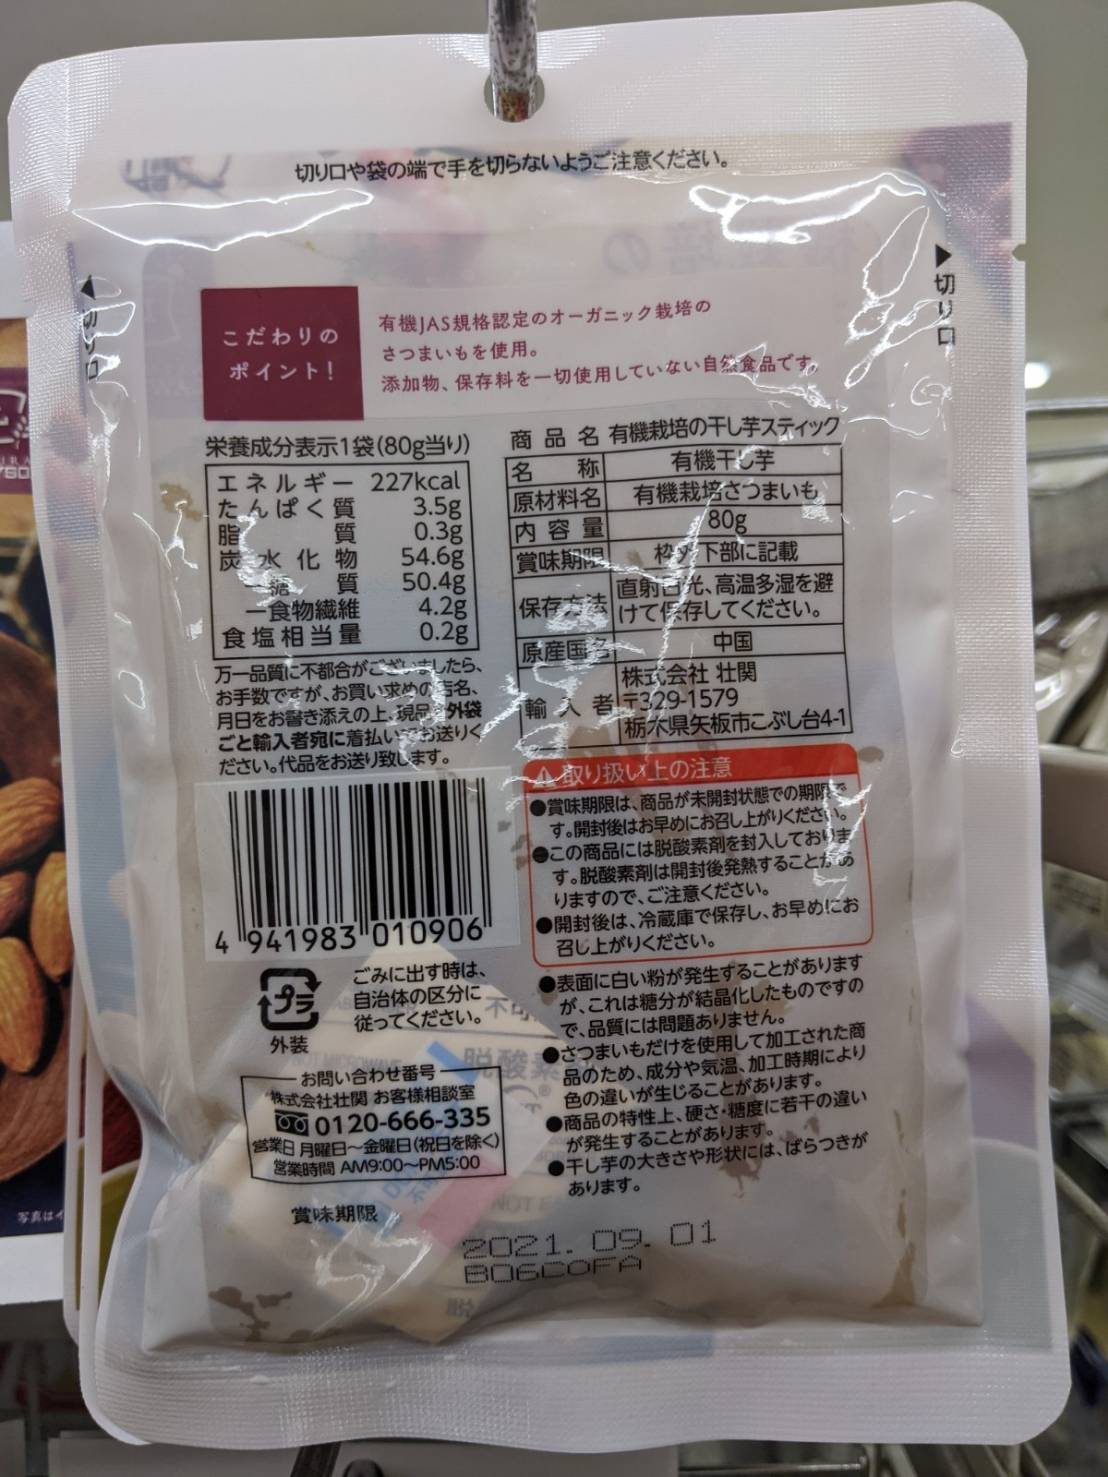 Natural Lawson and Lawson Dried Sweet Potato Sticks back of package